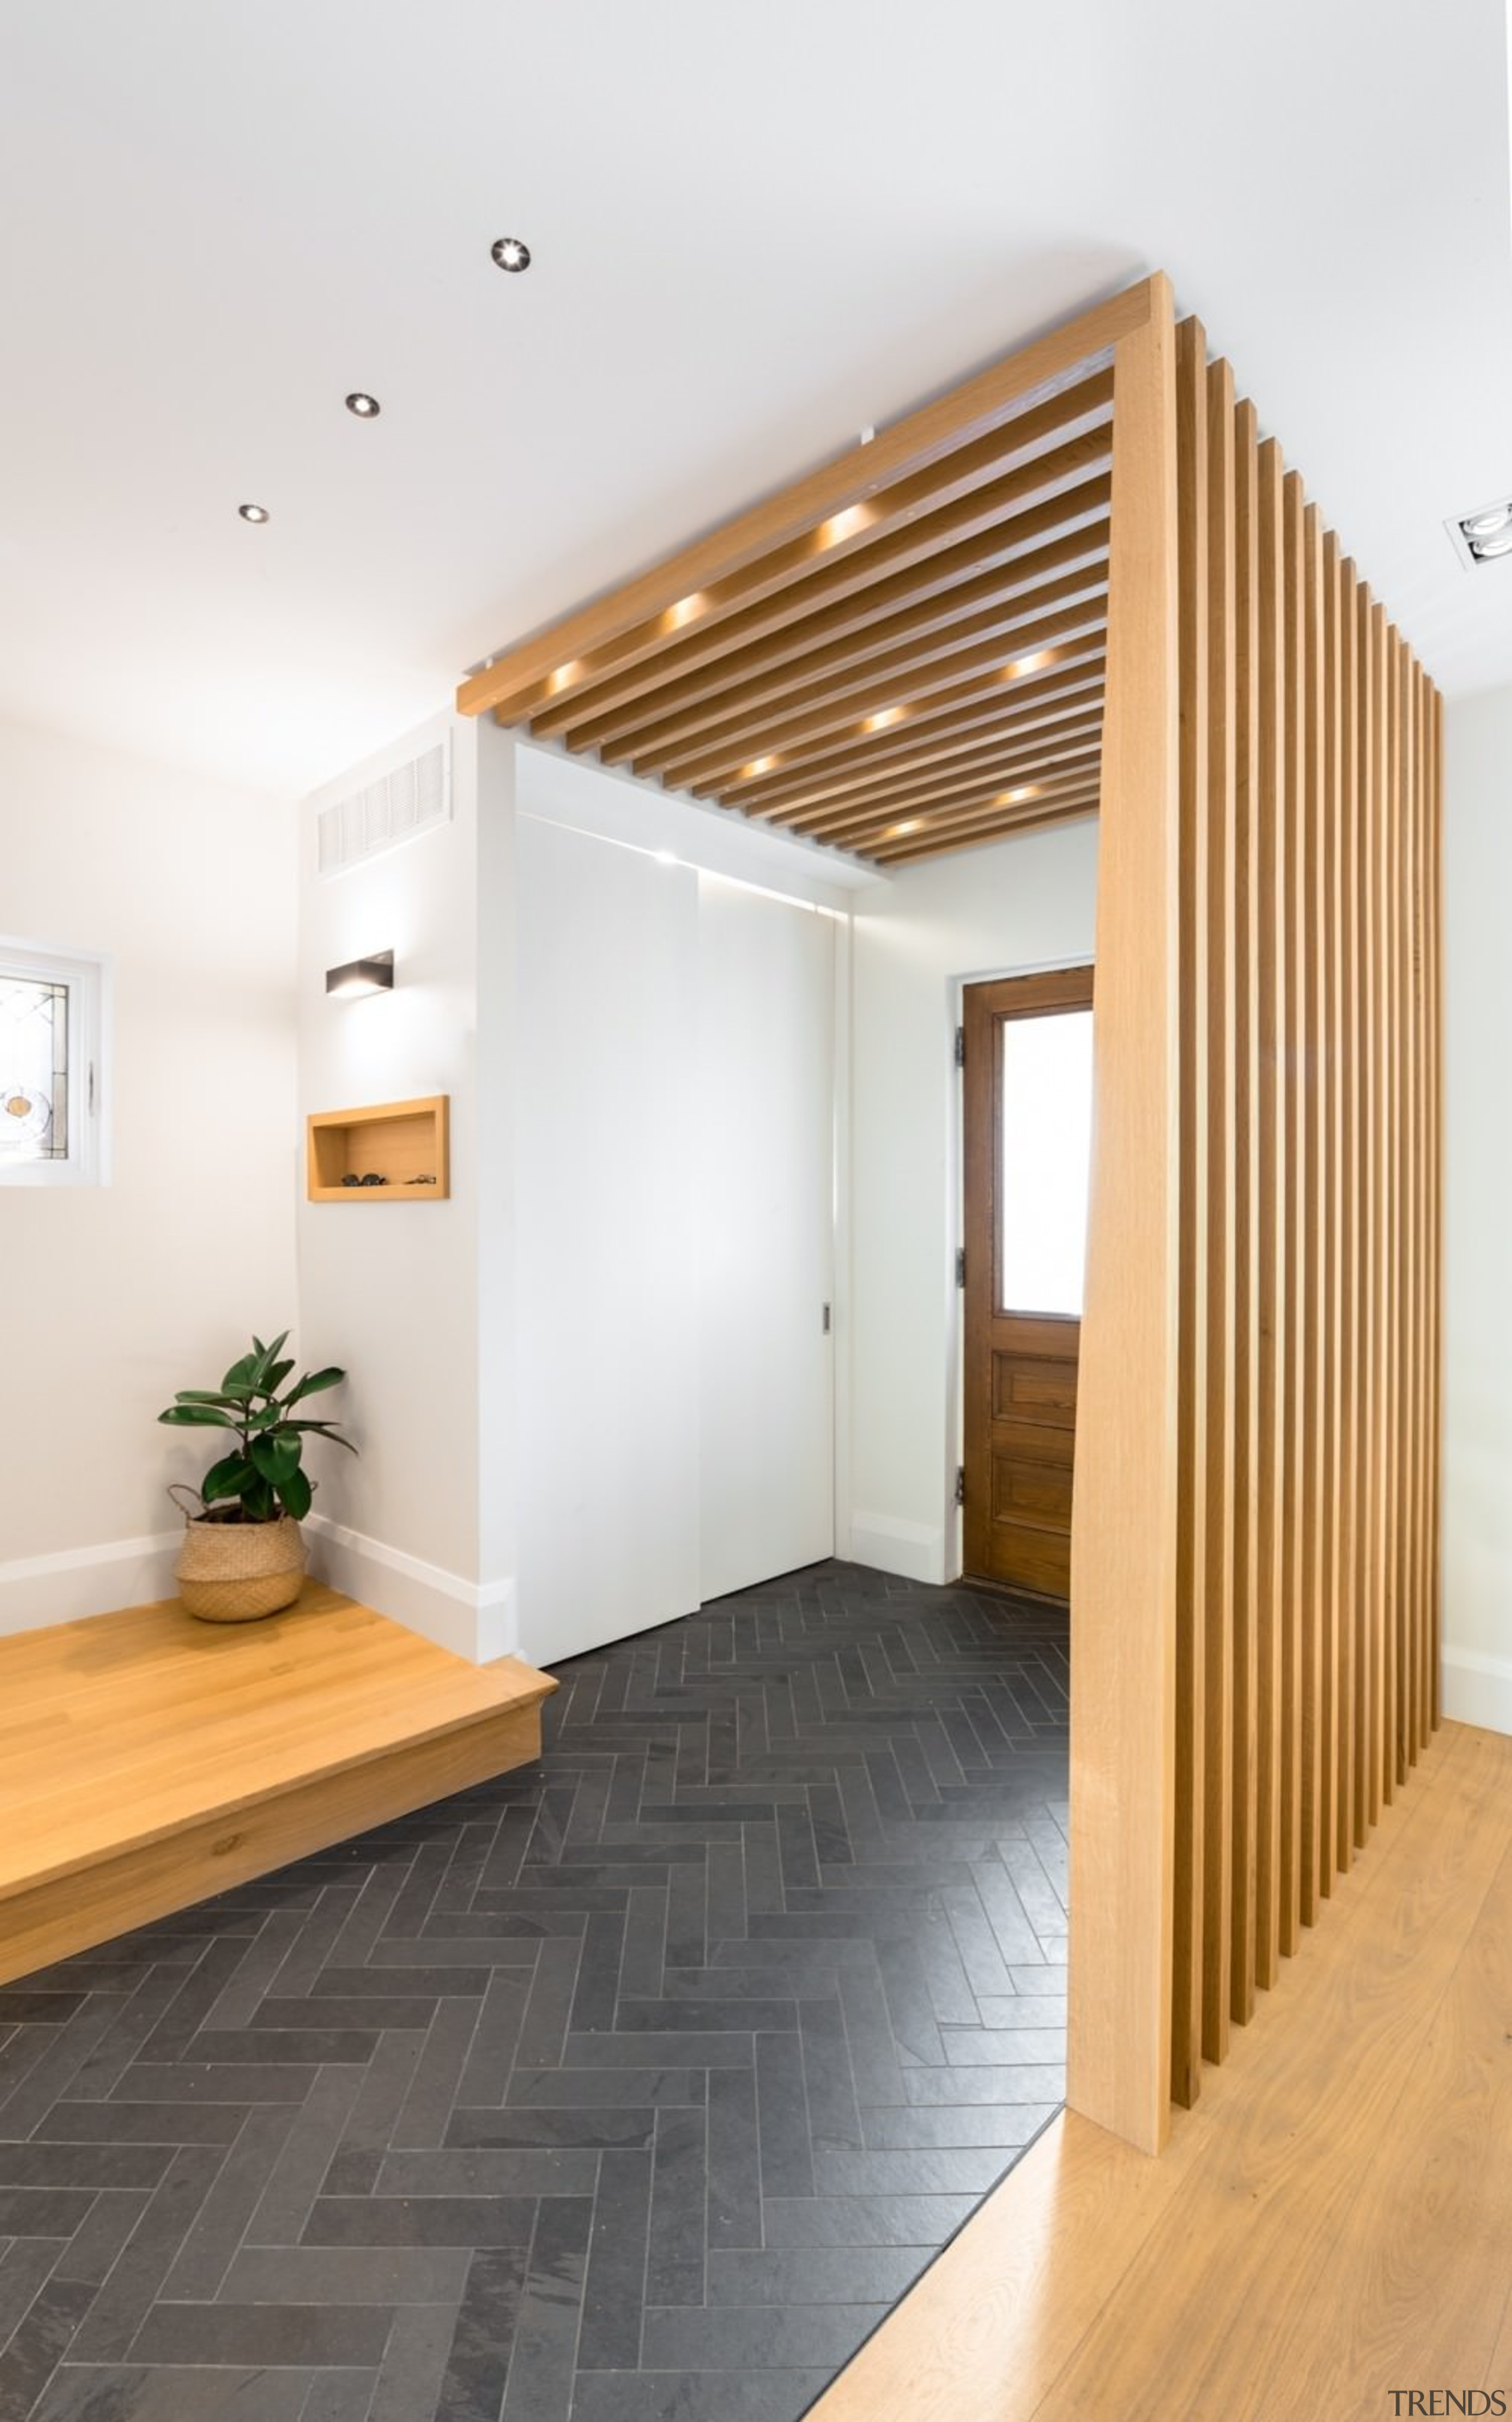 Slats run up from the herringbone floor and architecture, ceiling, floor, flooring, house, interior design, laminate flooring, product design, real estate, stairs, wood, wood flooring, white